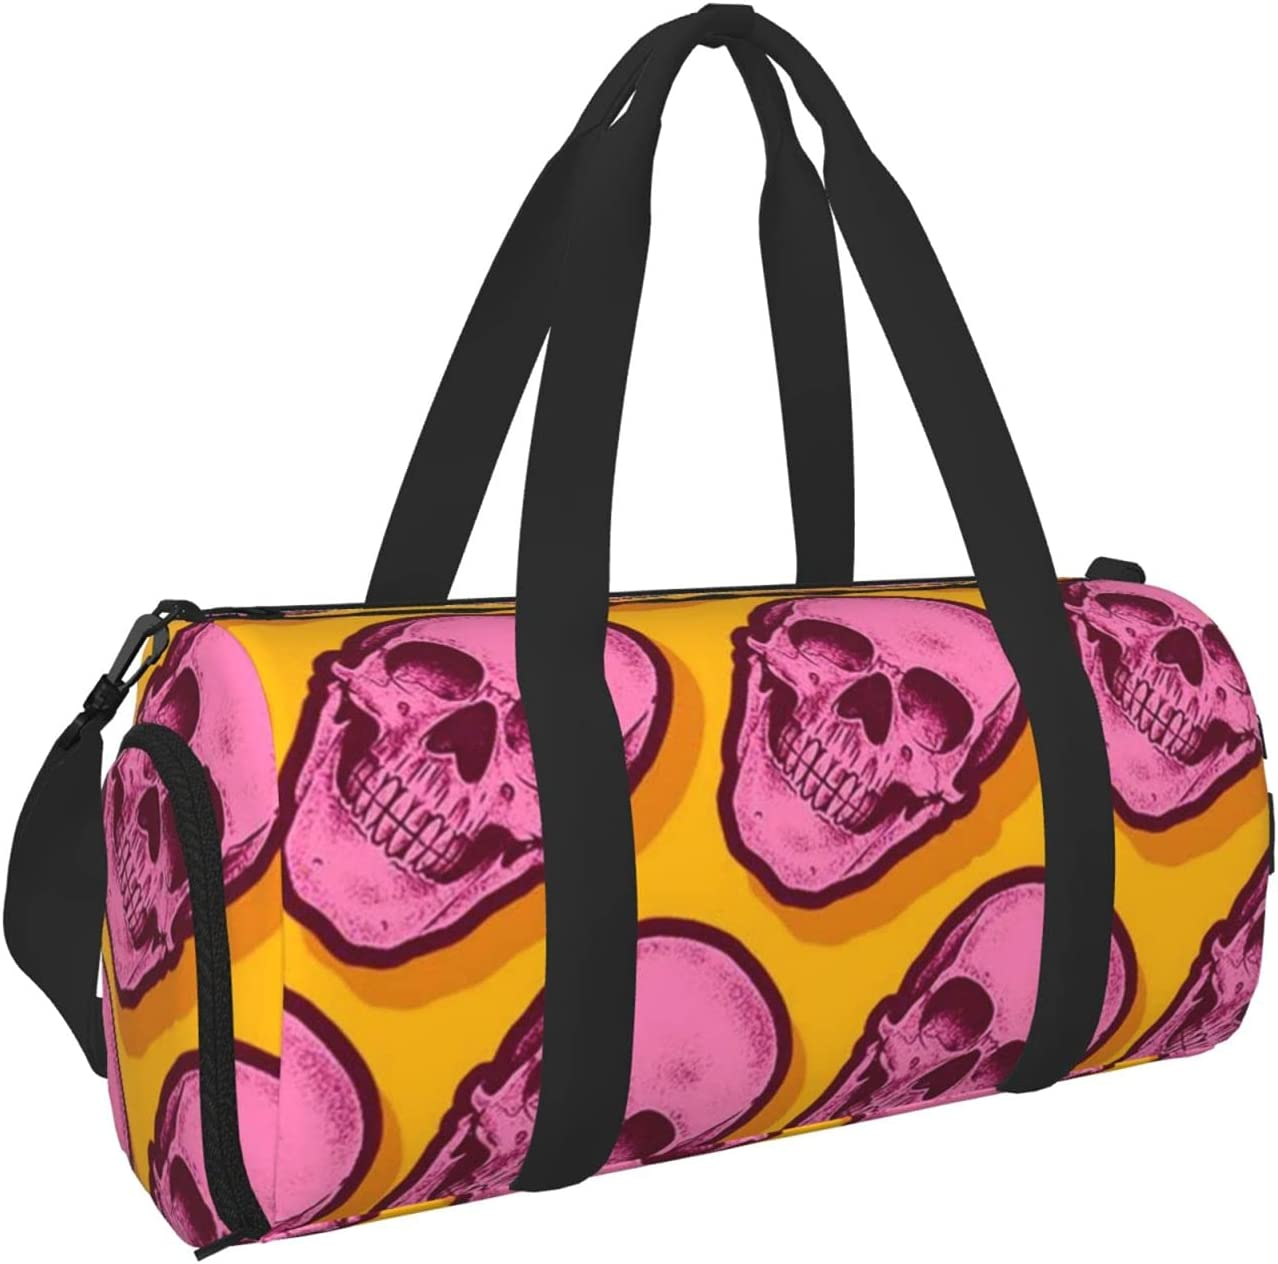 Kenaat Pink Skull Sports Gym Bag Separated Dry Spring new Ranking TOP3 work one after another With Wet Duff